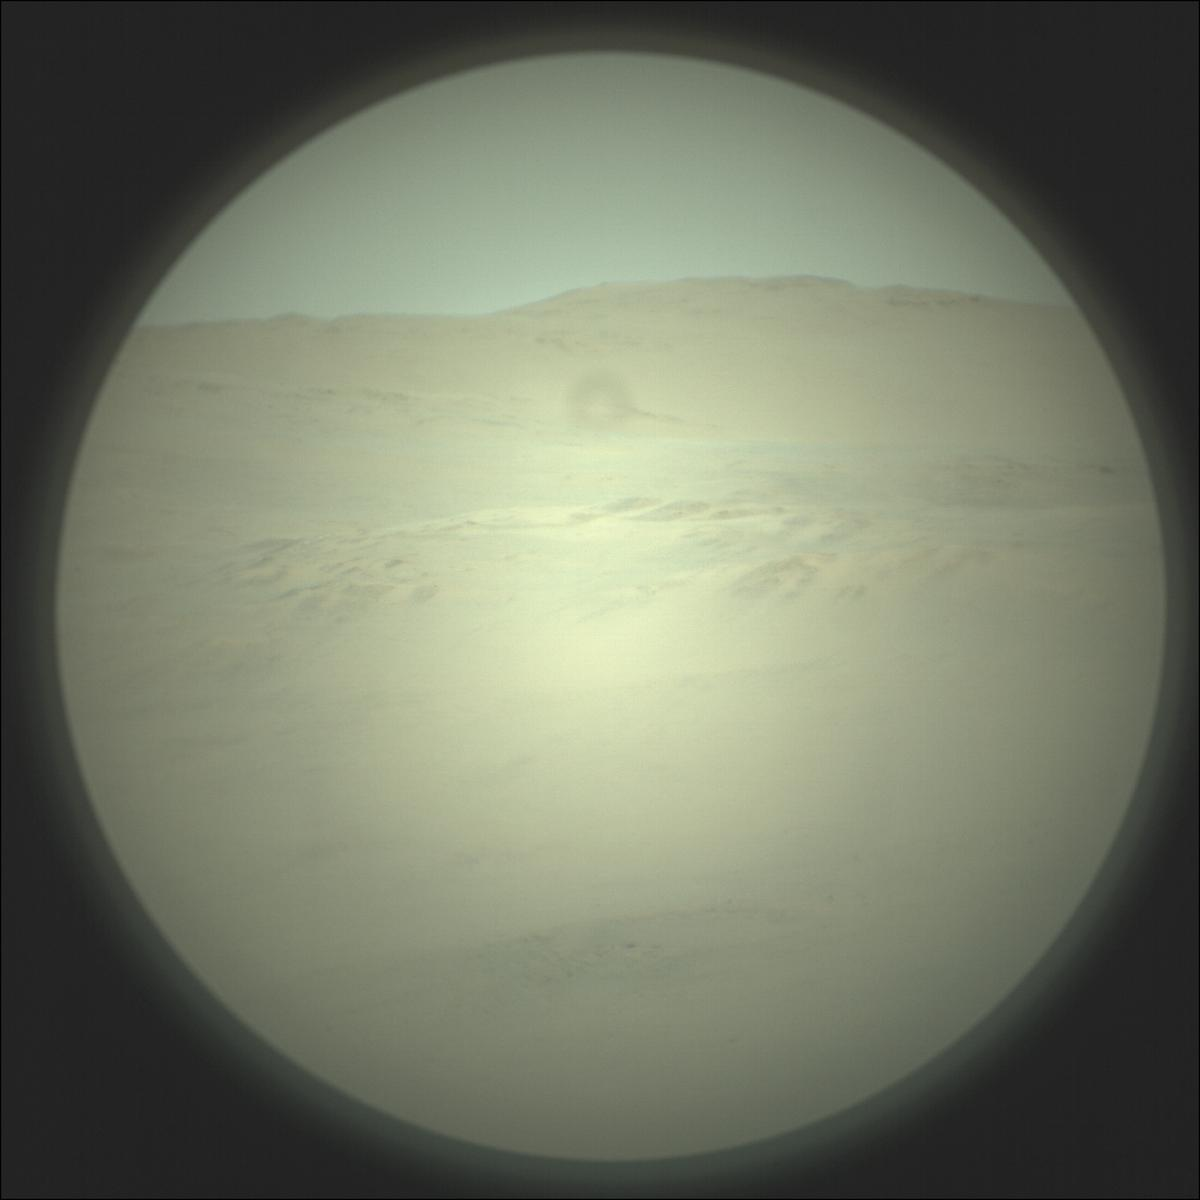 This image was taken by SUPERCAM_RMI onboard NASA's Mars rover Perseverance on Sol 144